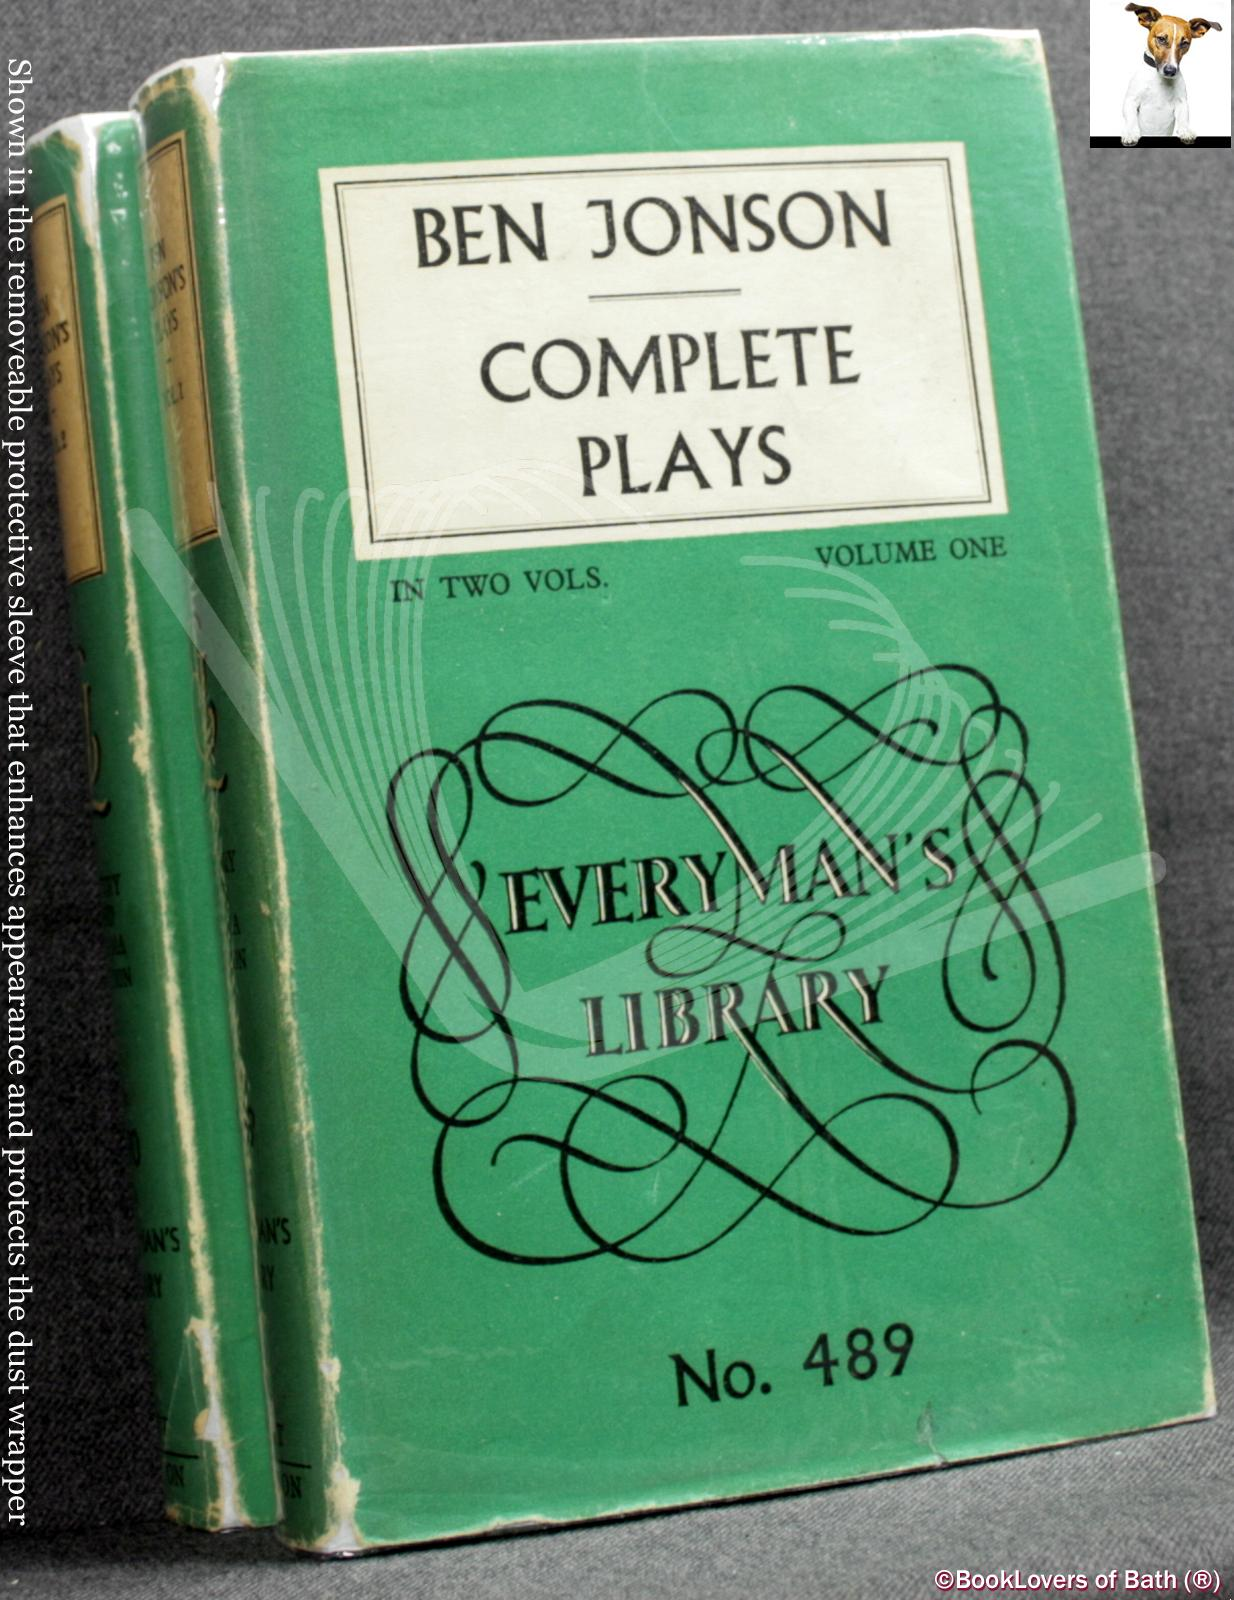 The Complete Plays of Ben Jonson - Ben Jonson